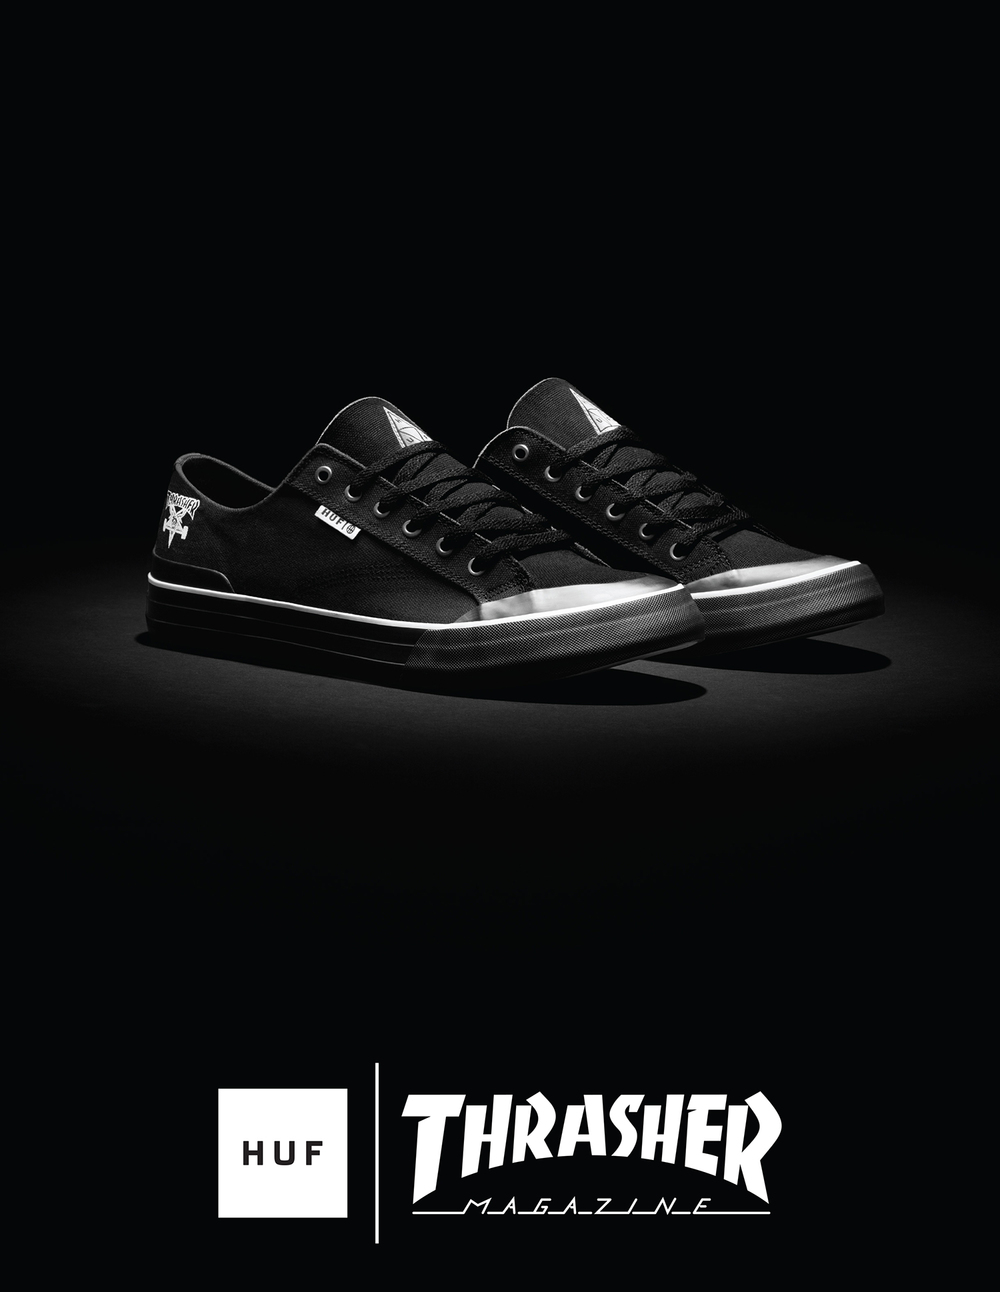 34_huf_thrasher_us_tour_shoe.jpg